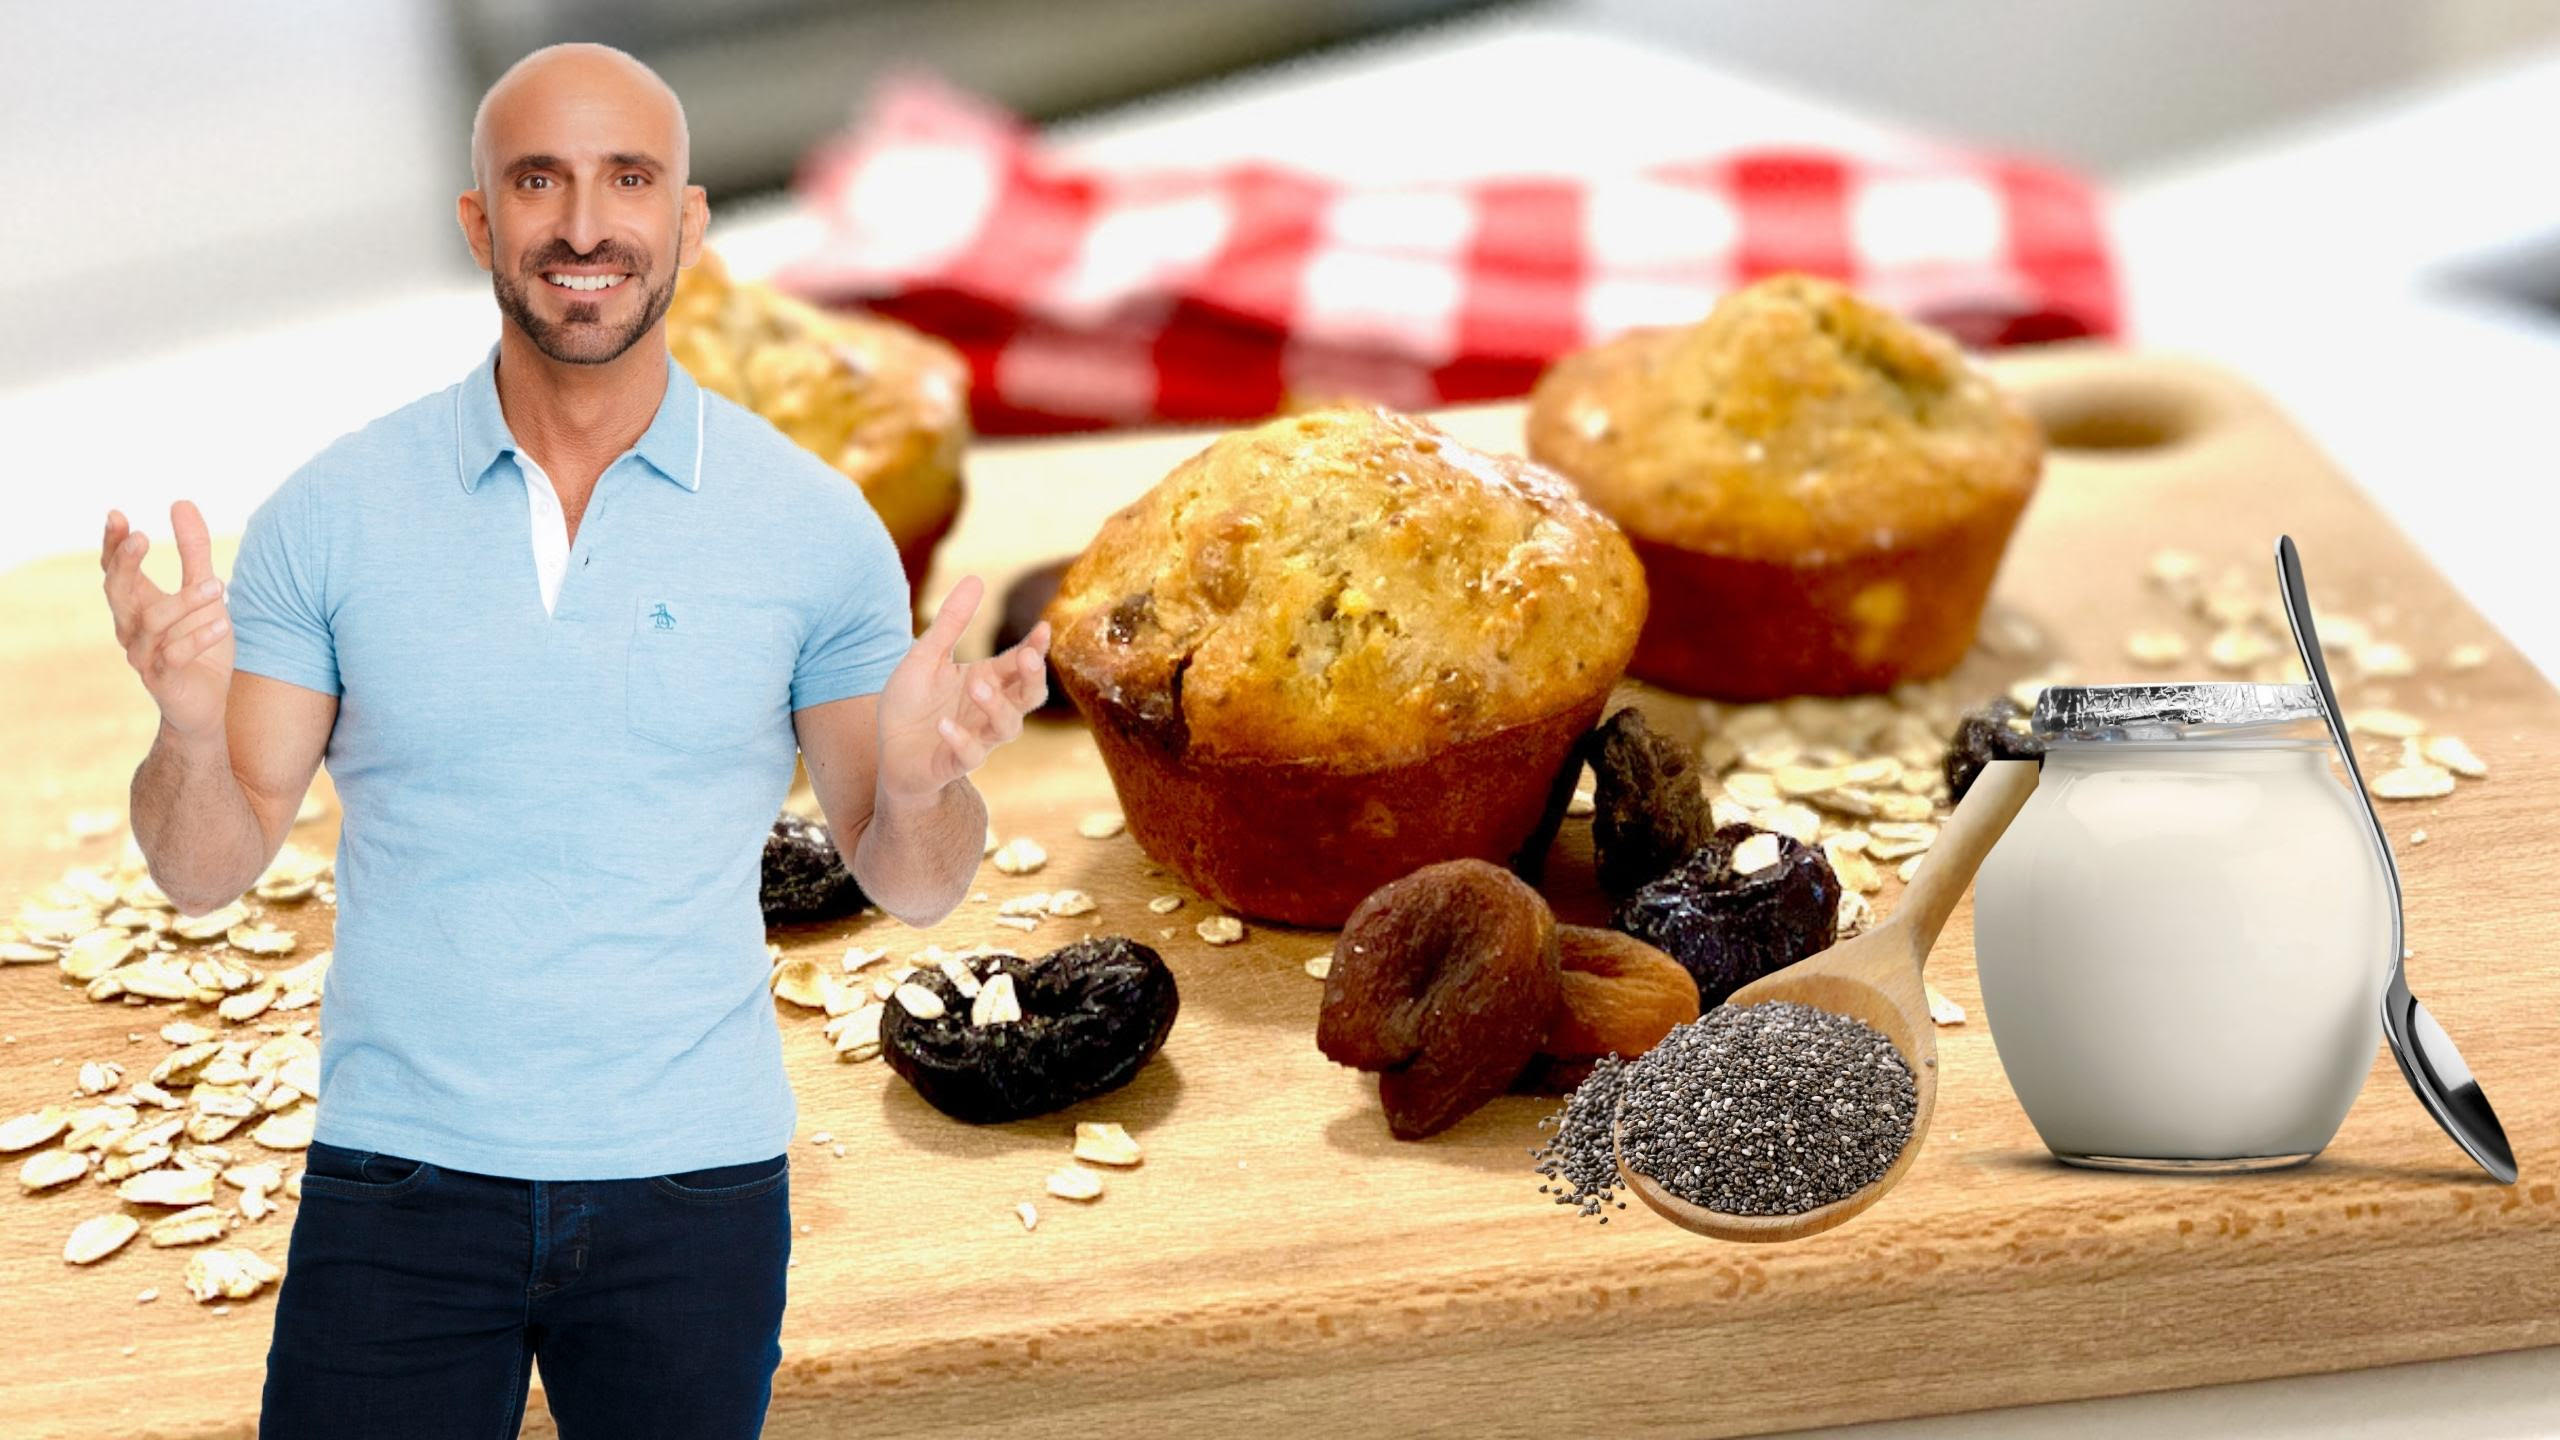 How to Make a Delicious High Protein and Fiber Muffin